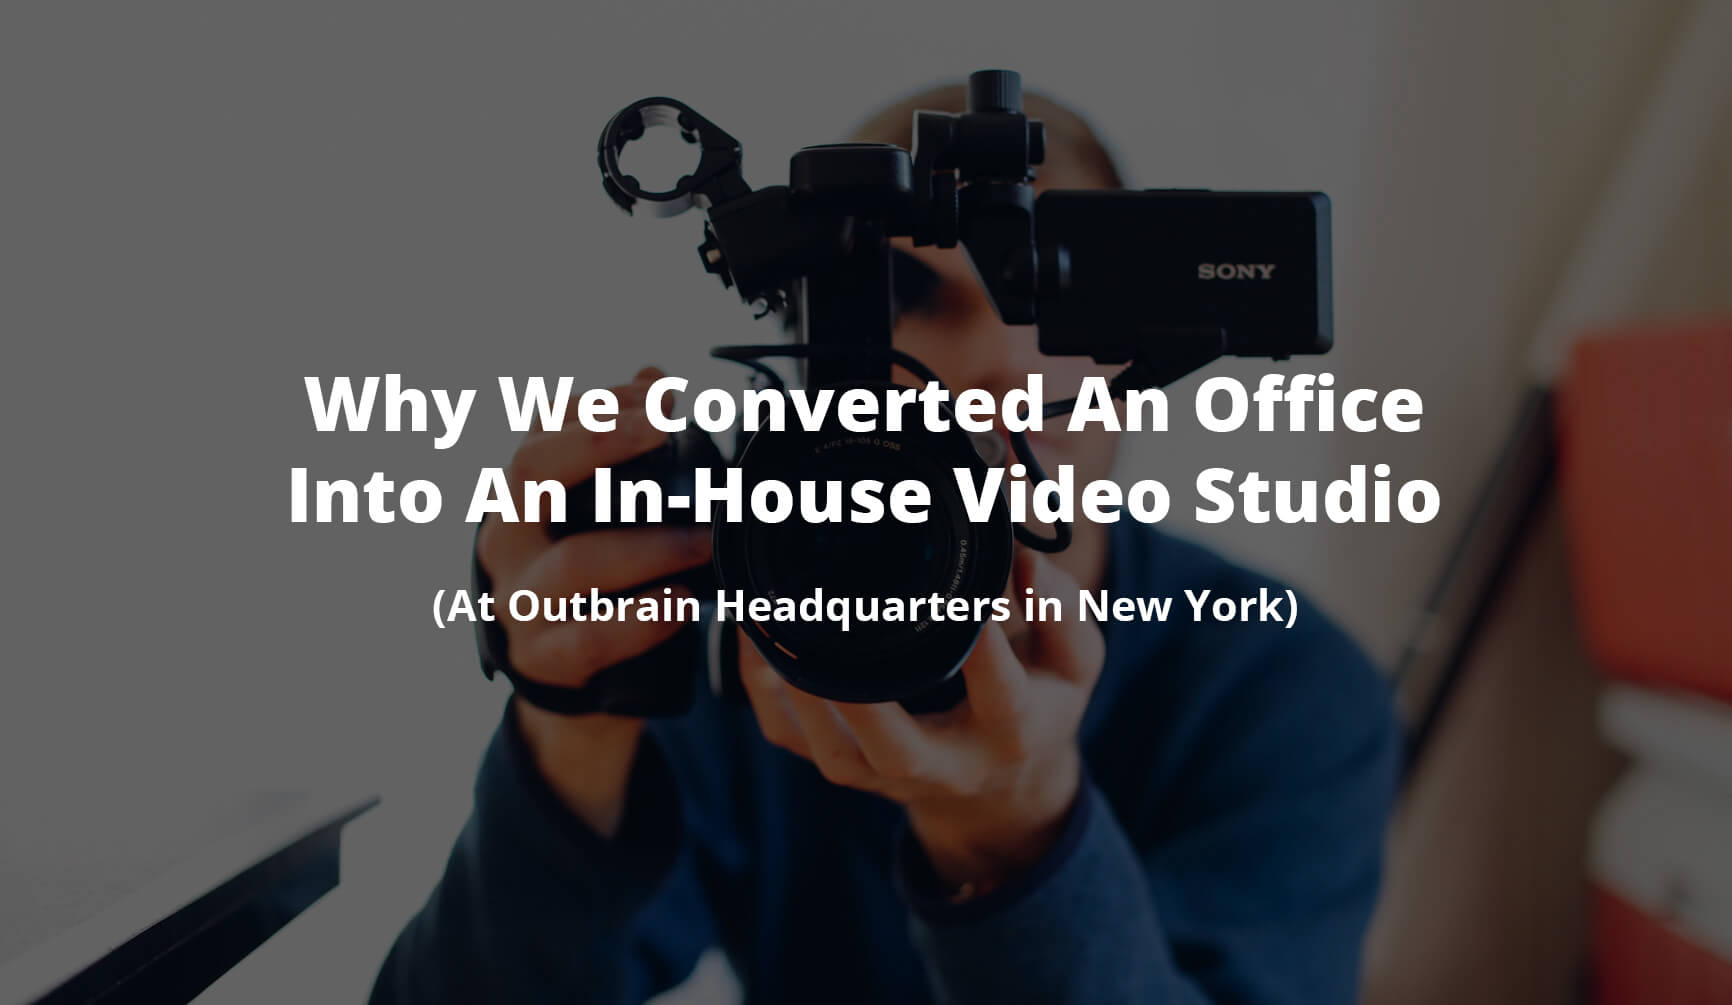 Outbrain Video Marketing